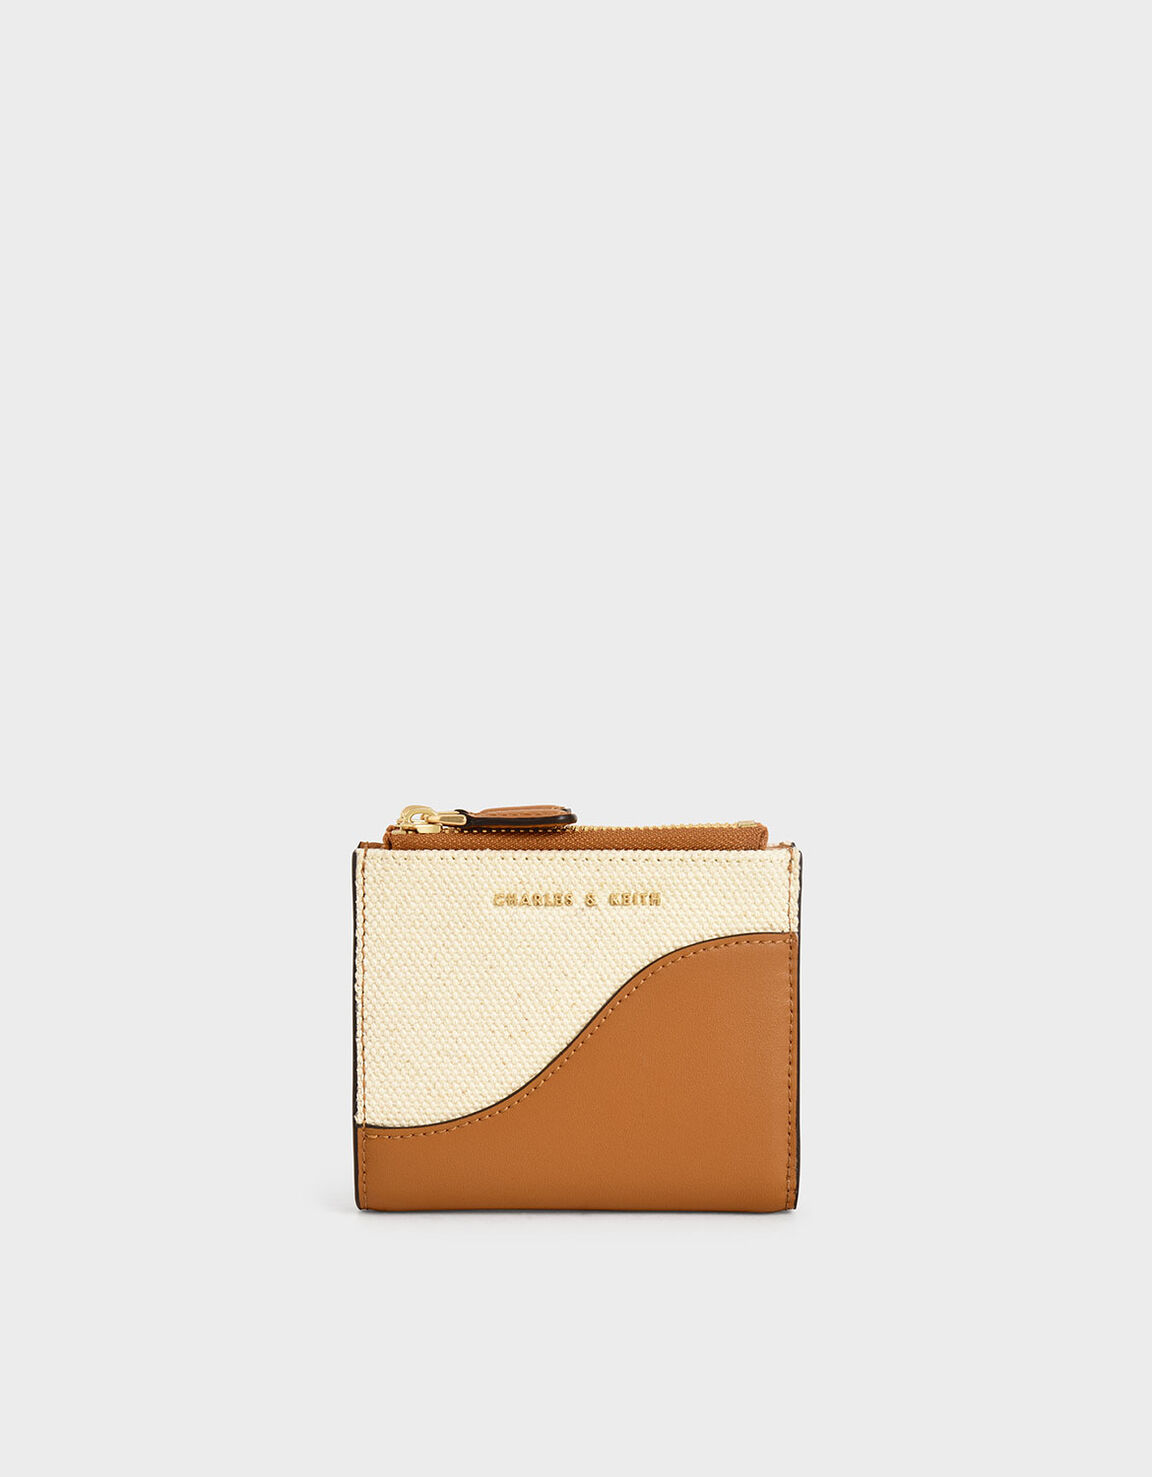 Two-toned Leather Zippered Pouch